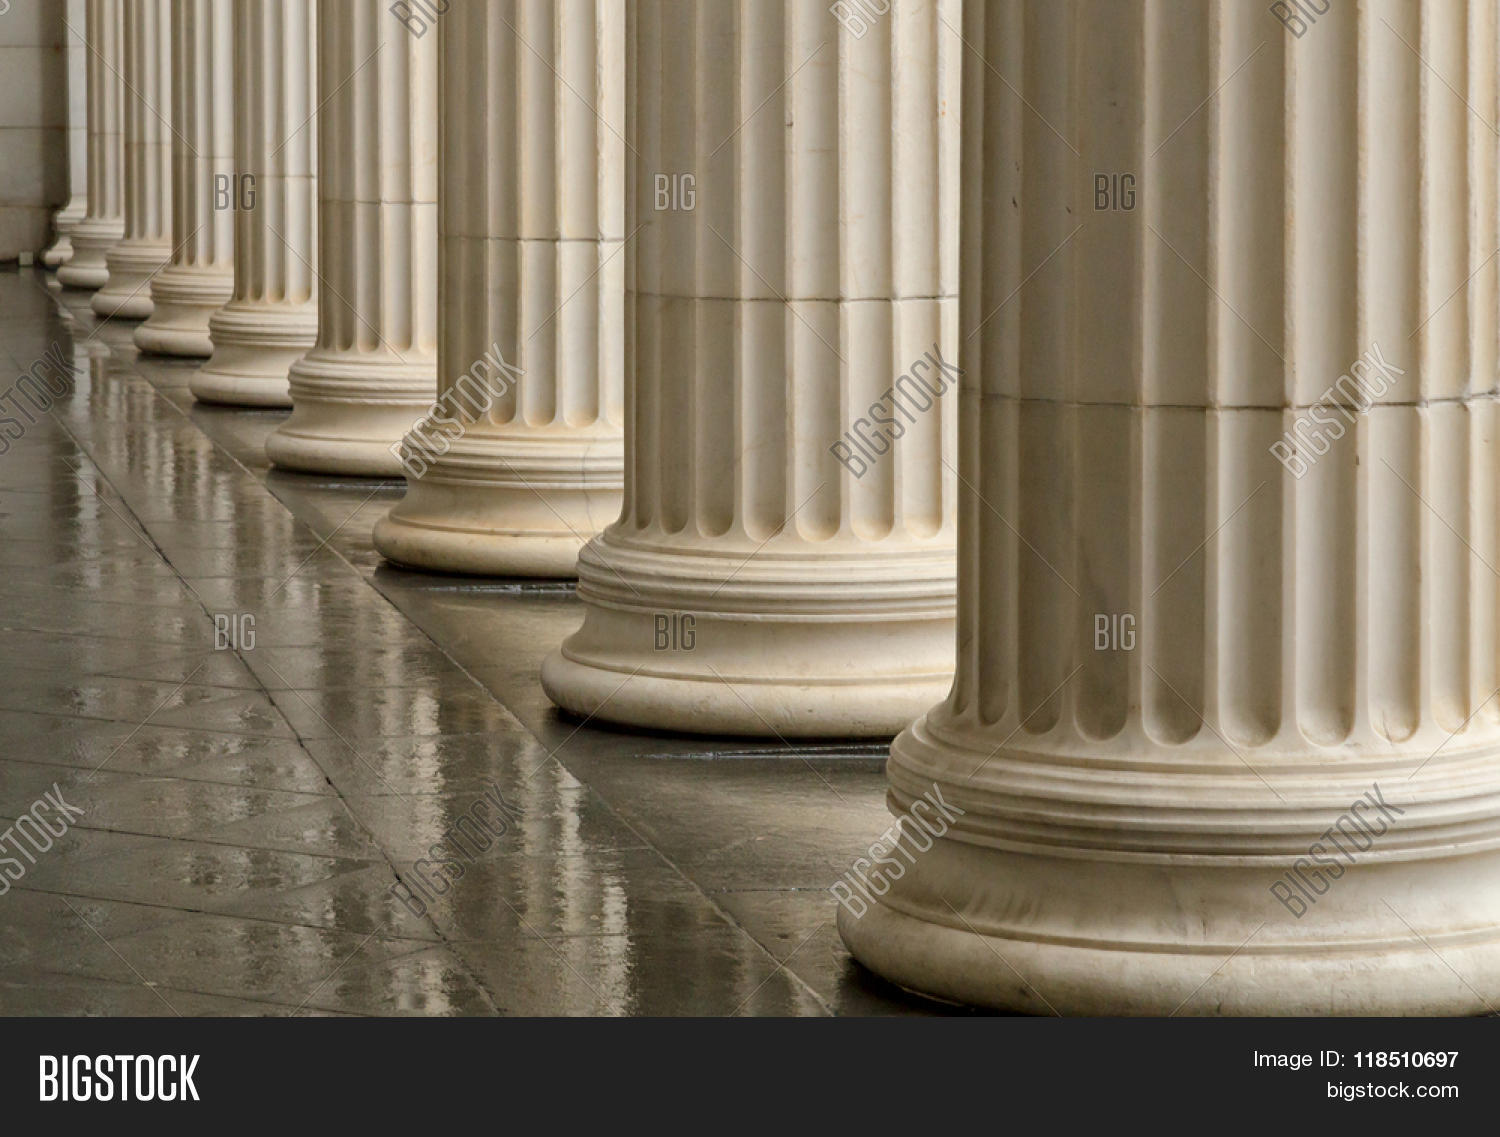 academia,academic,ancient,antique,architecture,background,building,business,capital,classic,classical,college,colonnade,column,court,courthouse,design,education,exterior,finance,financial,freedom,government,greece,greek,ionic,justice,law,legal,library,light,marble,monument,neoclassical,old,pillar,public,reflection,roman,solid,steps,stone,strength,structure,support,temple,travel,university,water,white